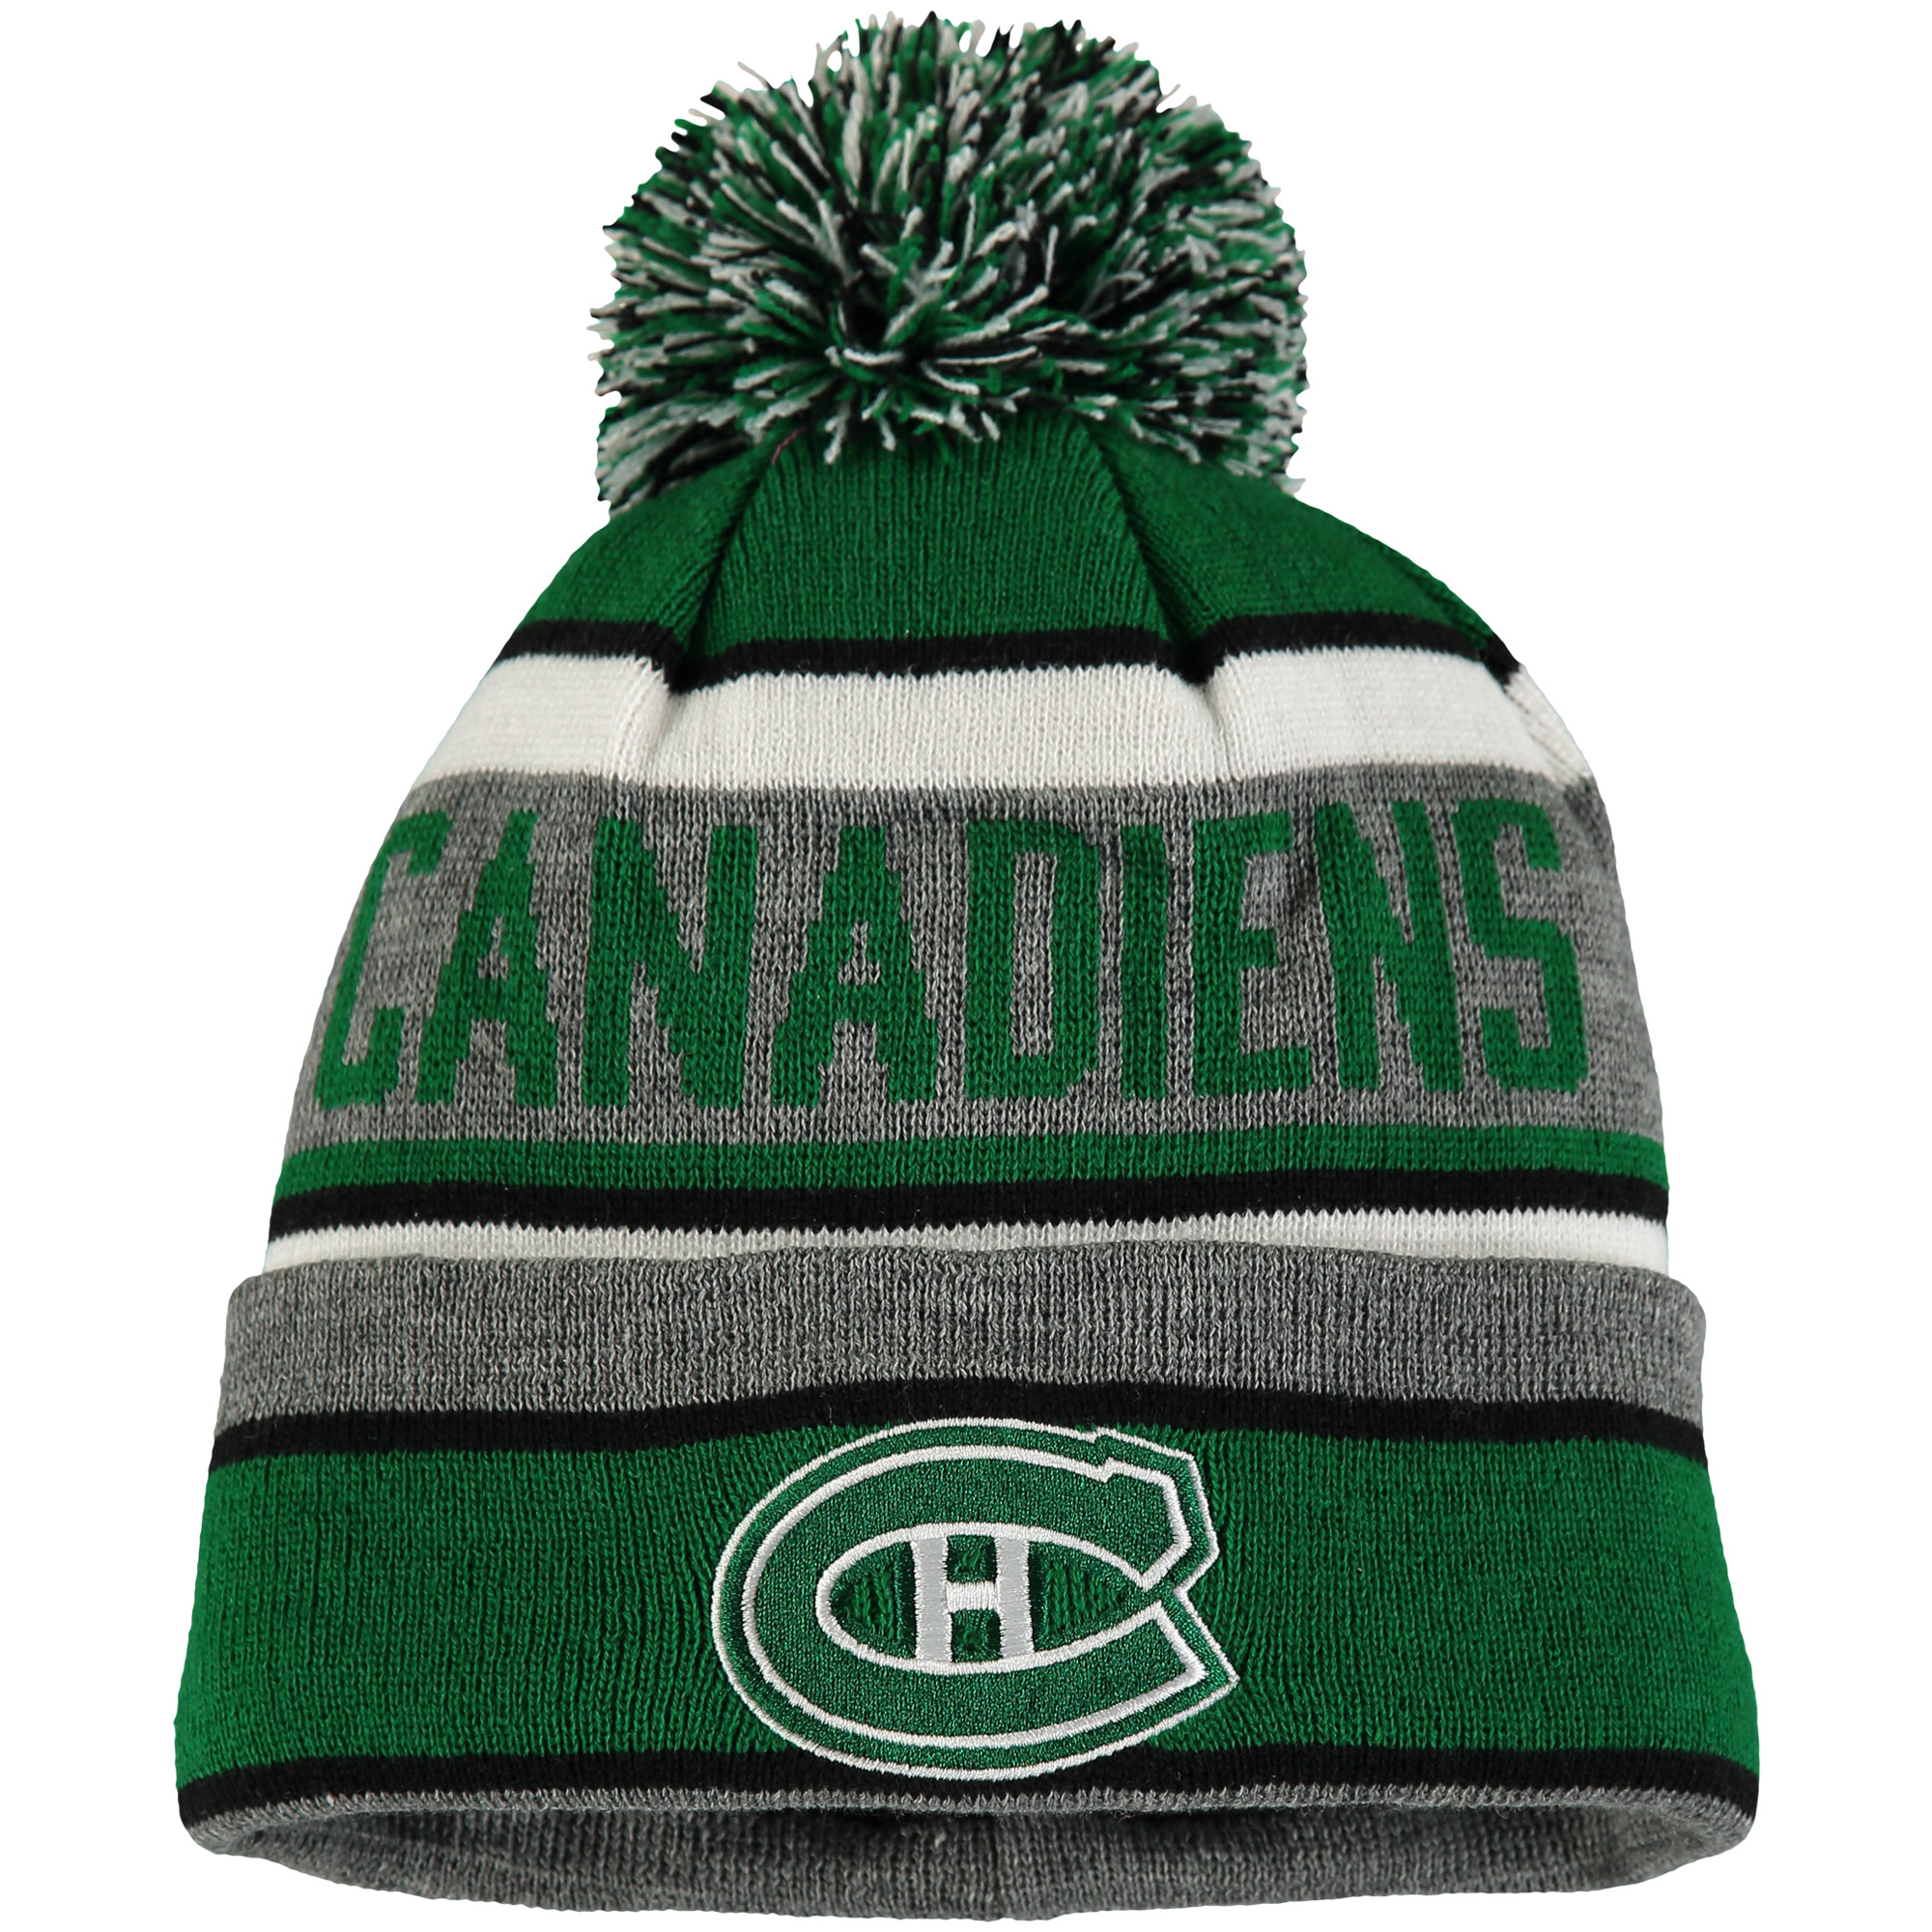 Montreal Canadiens Old Time Hockey St. Patrick's Day Duggan Cuffed Knit Hat with Pom - Green/Charcoal - OSFA